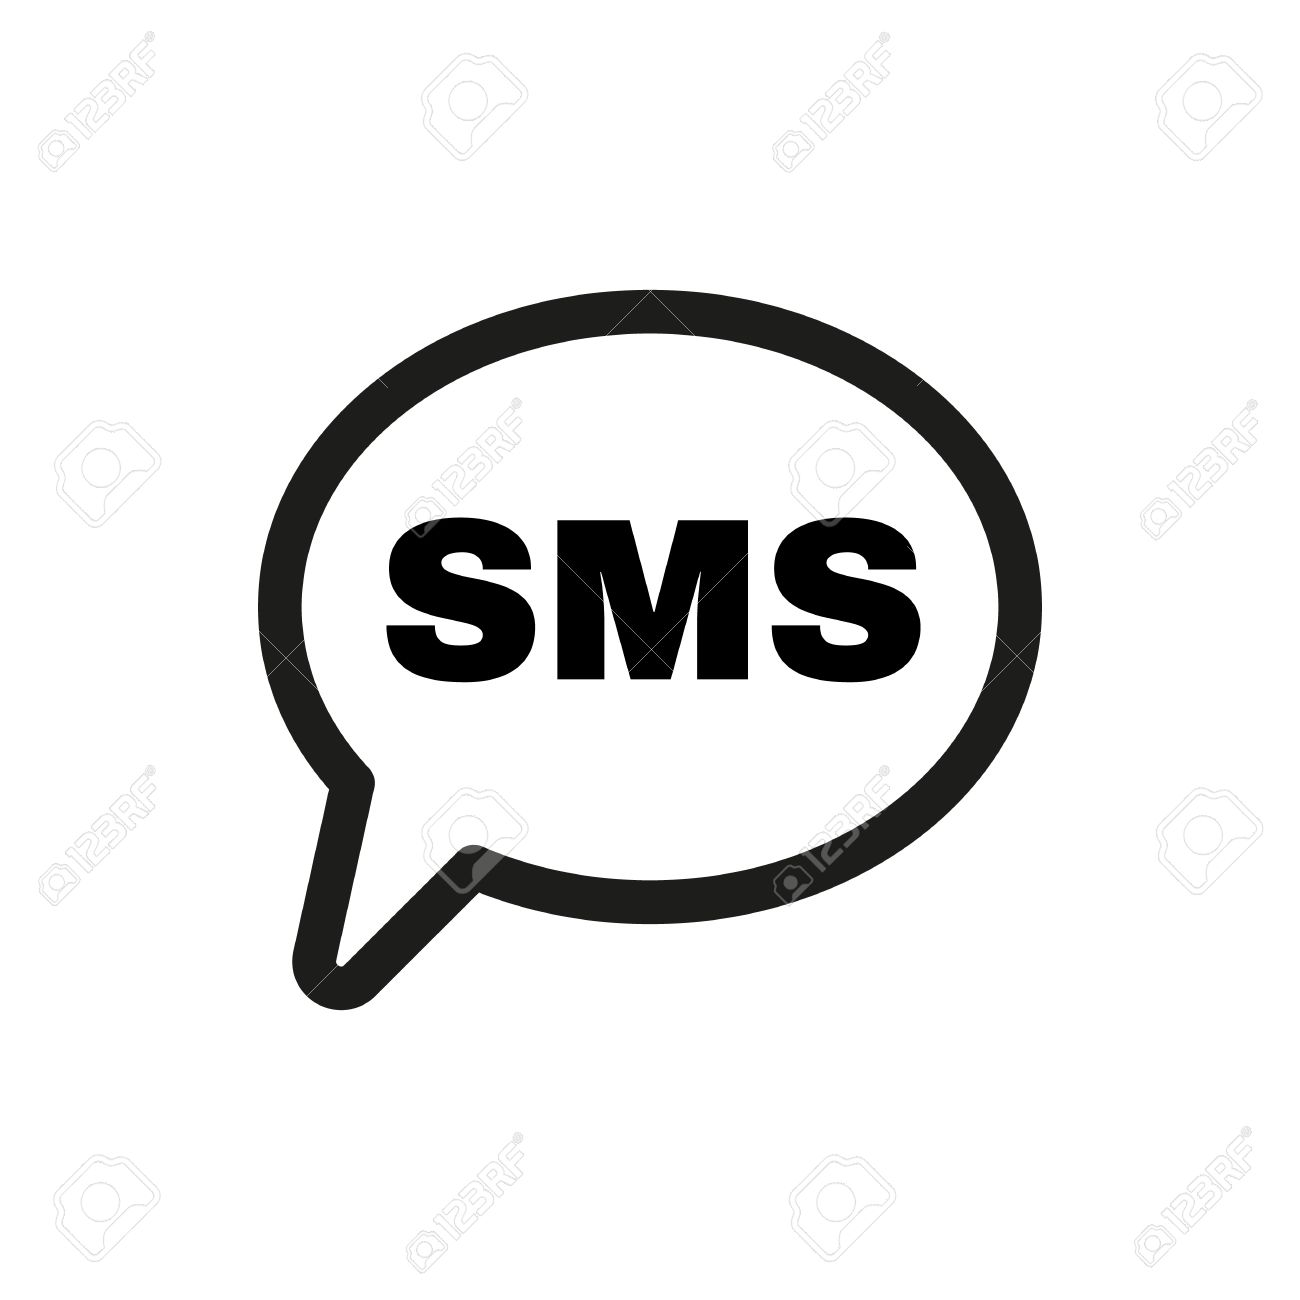 the sms icon text message symbol flat vector illustration royalty